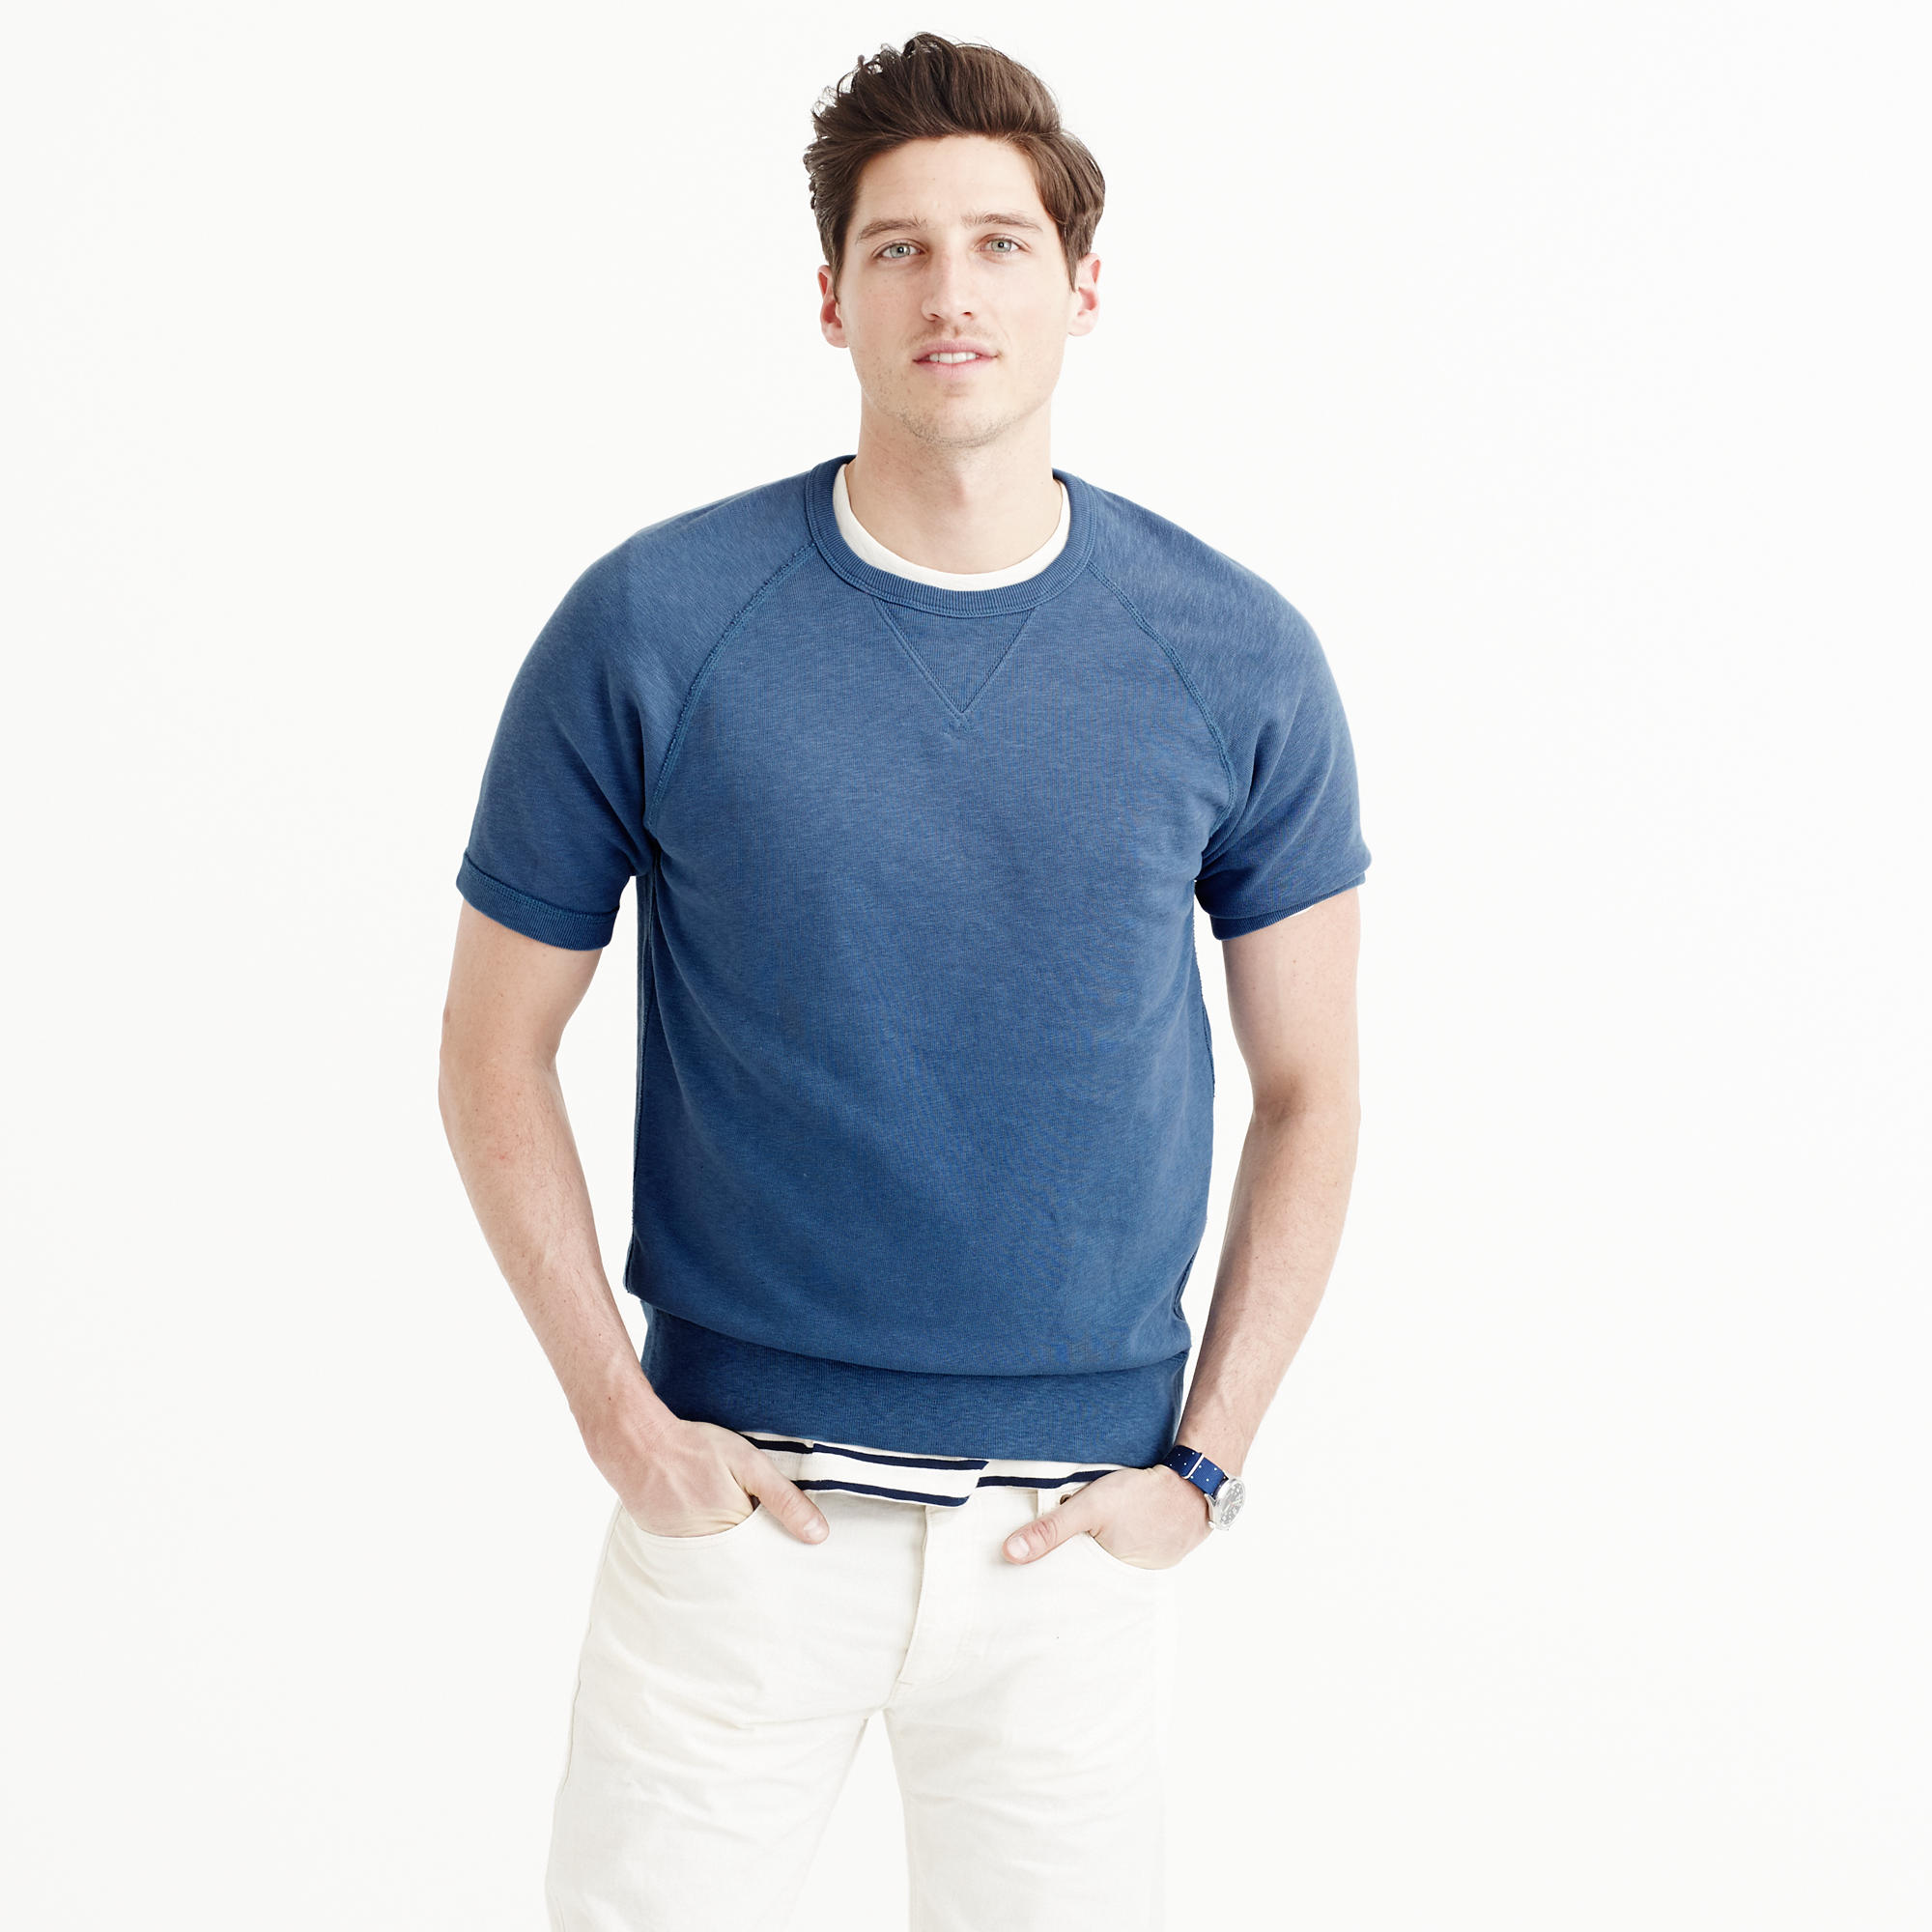 Sun-faded short-sleeve sweatshirt : Men sweatshirts | J.Crew